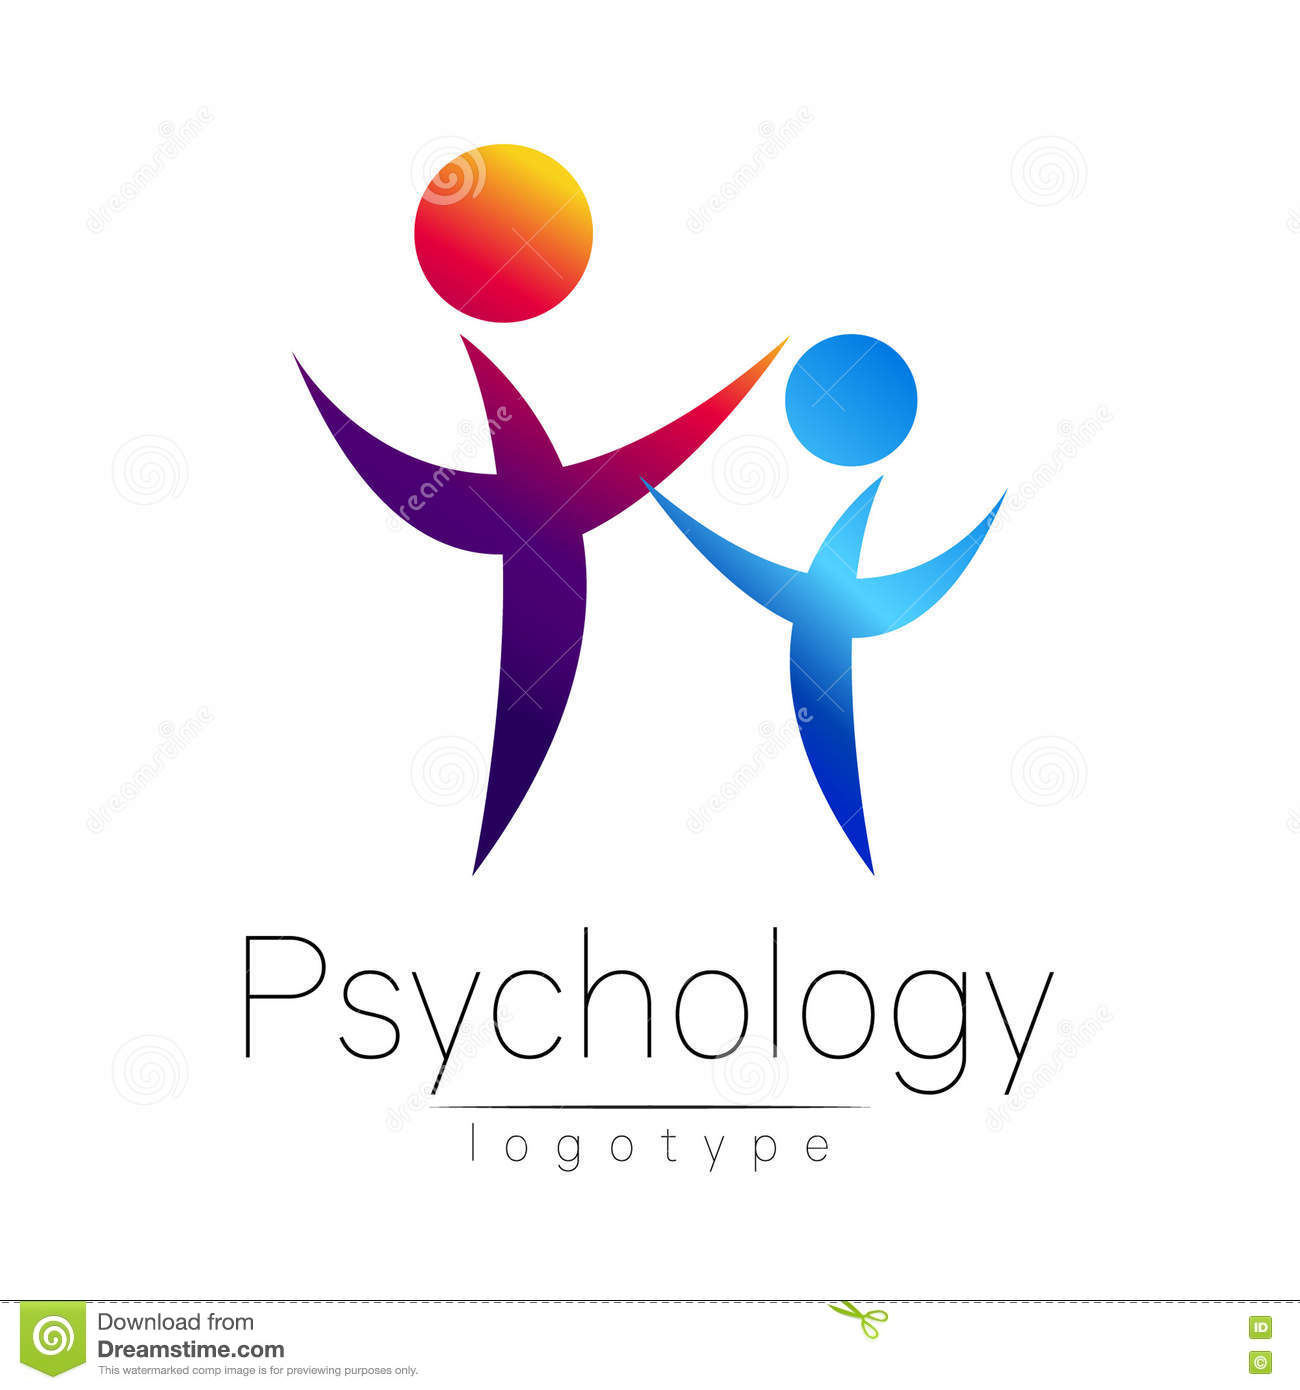 37 psychologist therapist and counselor logos to guide